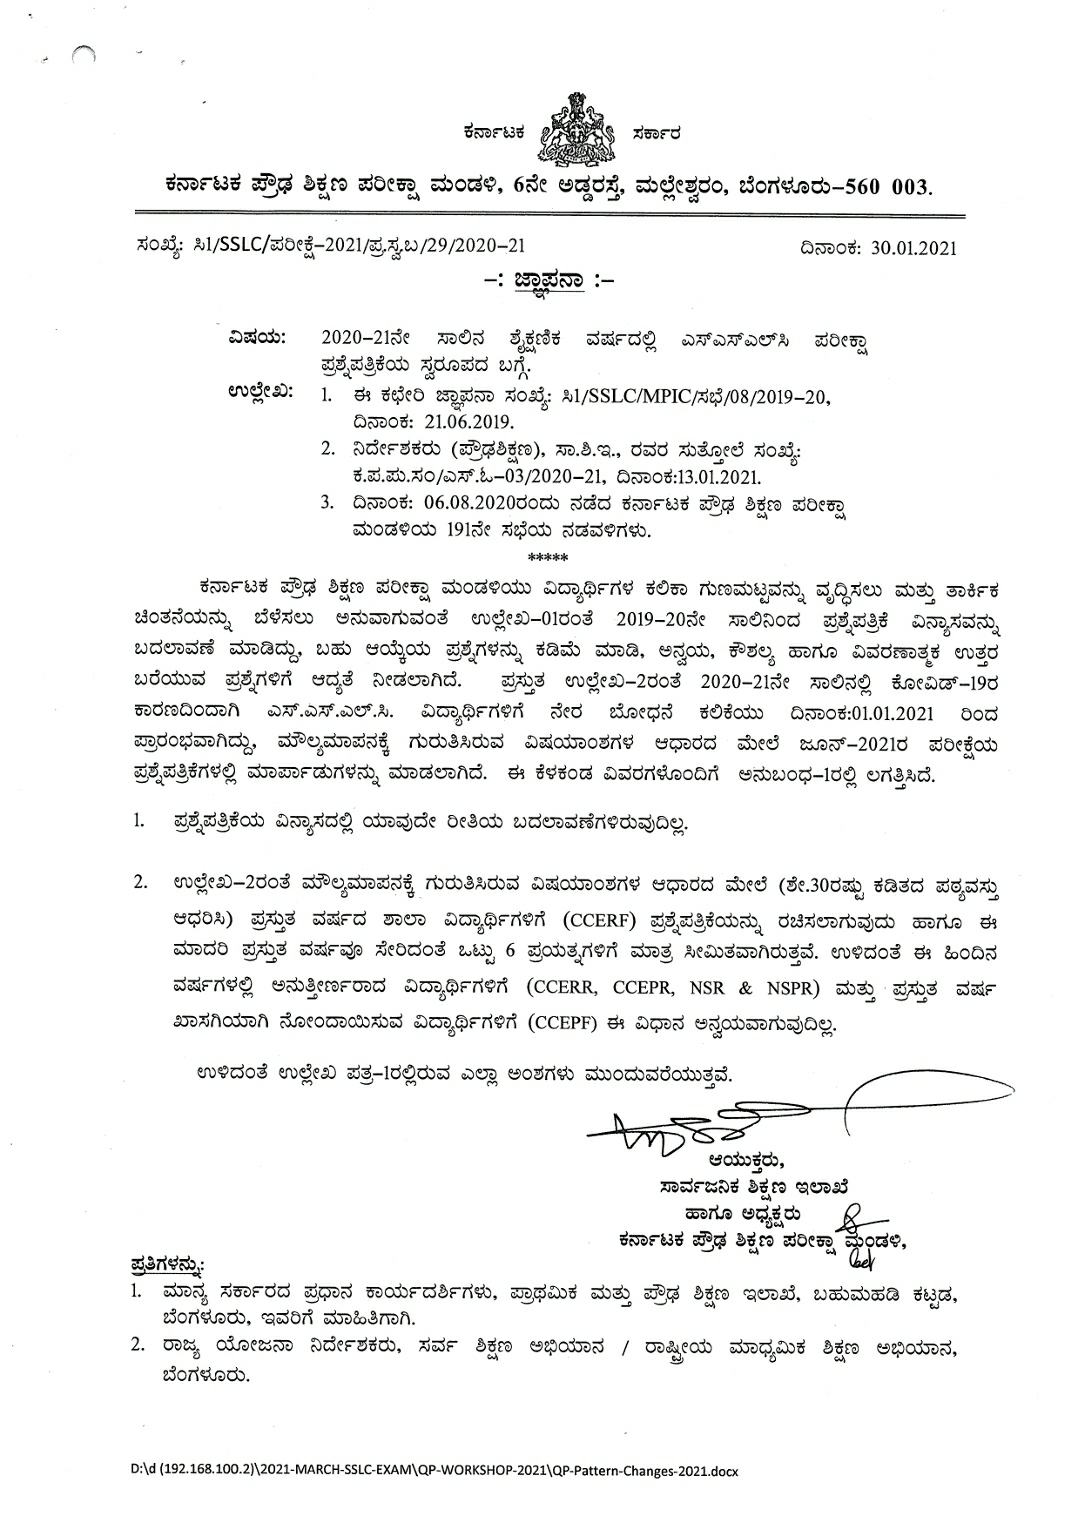 Regarding the format of the SSLC exam question paper in the academic line 2020-21